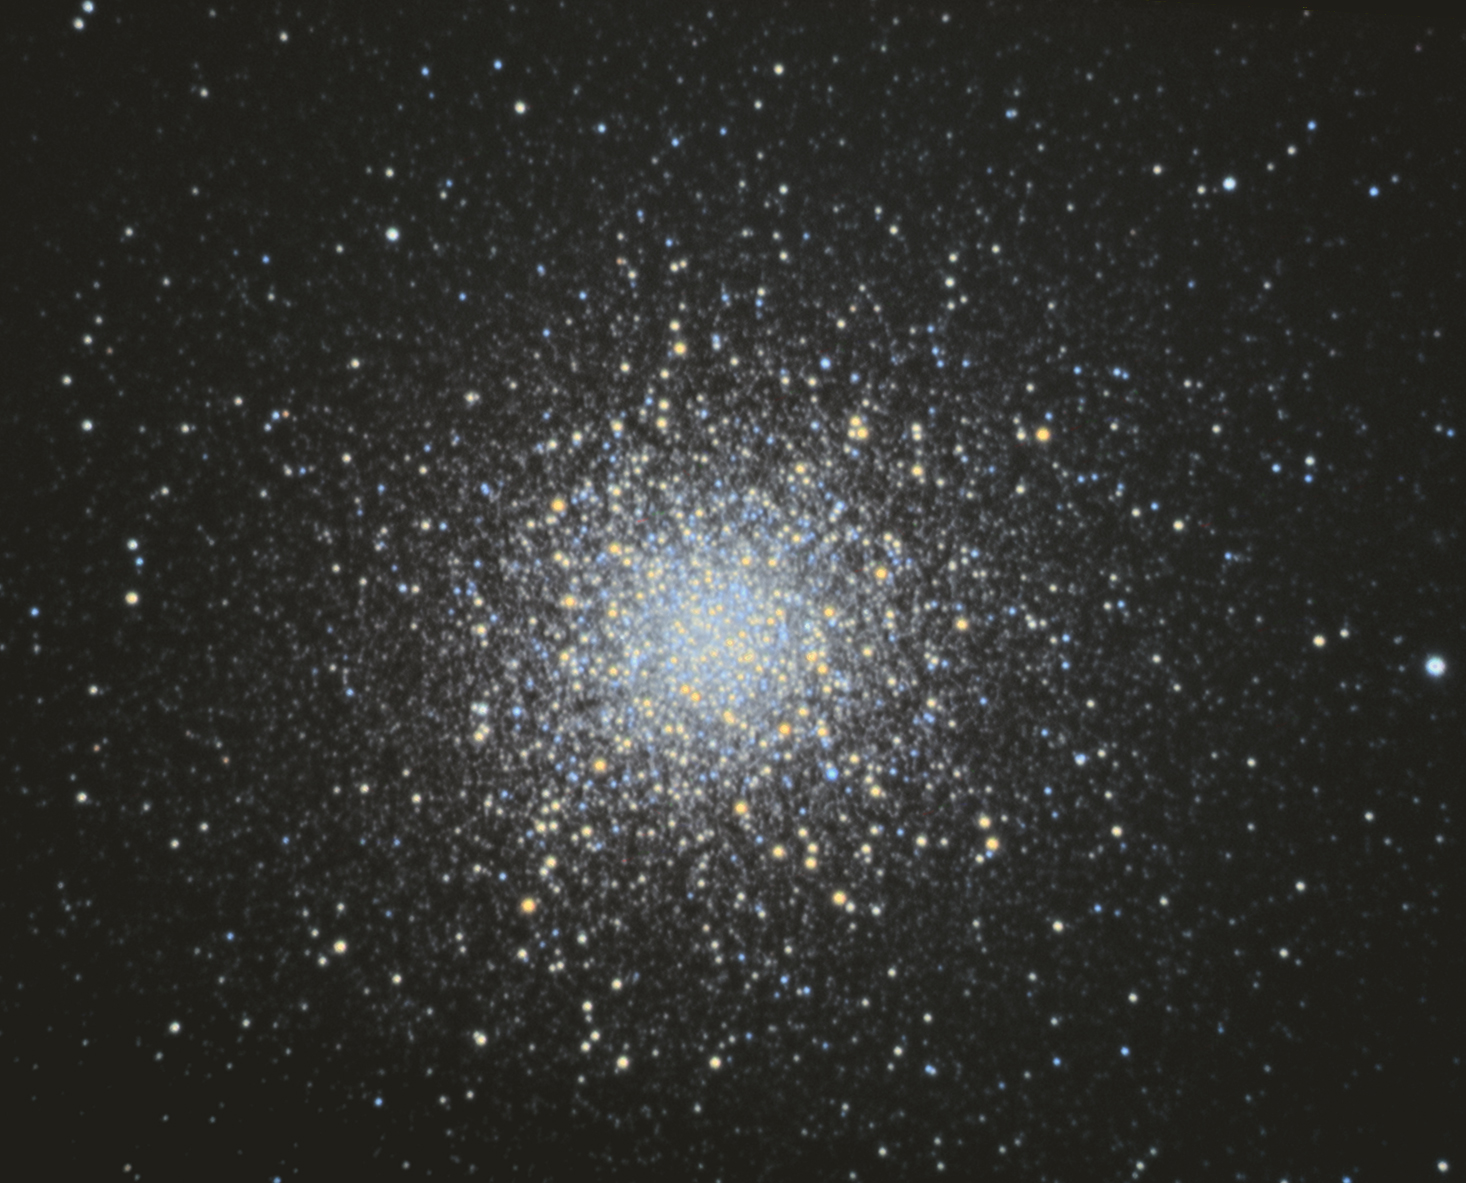 The Hercules Globular Cluster